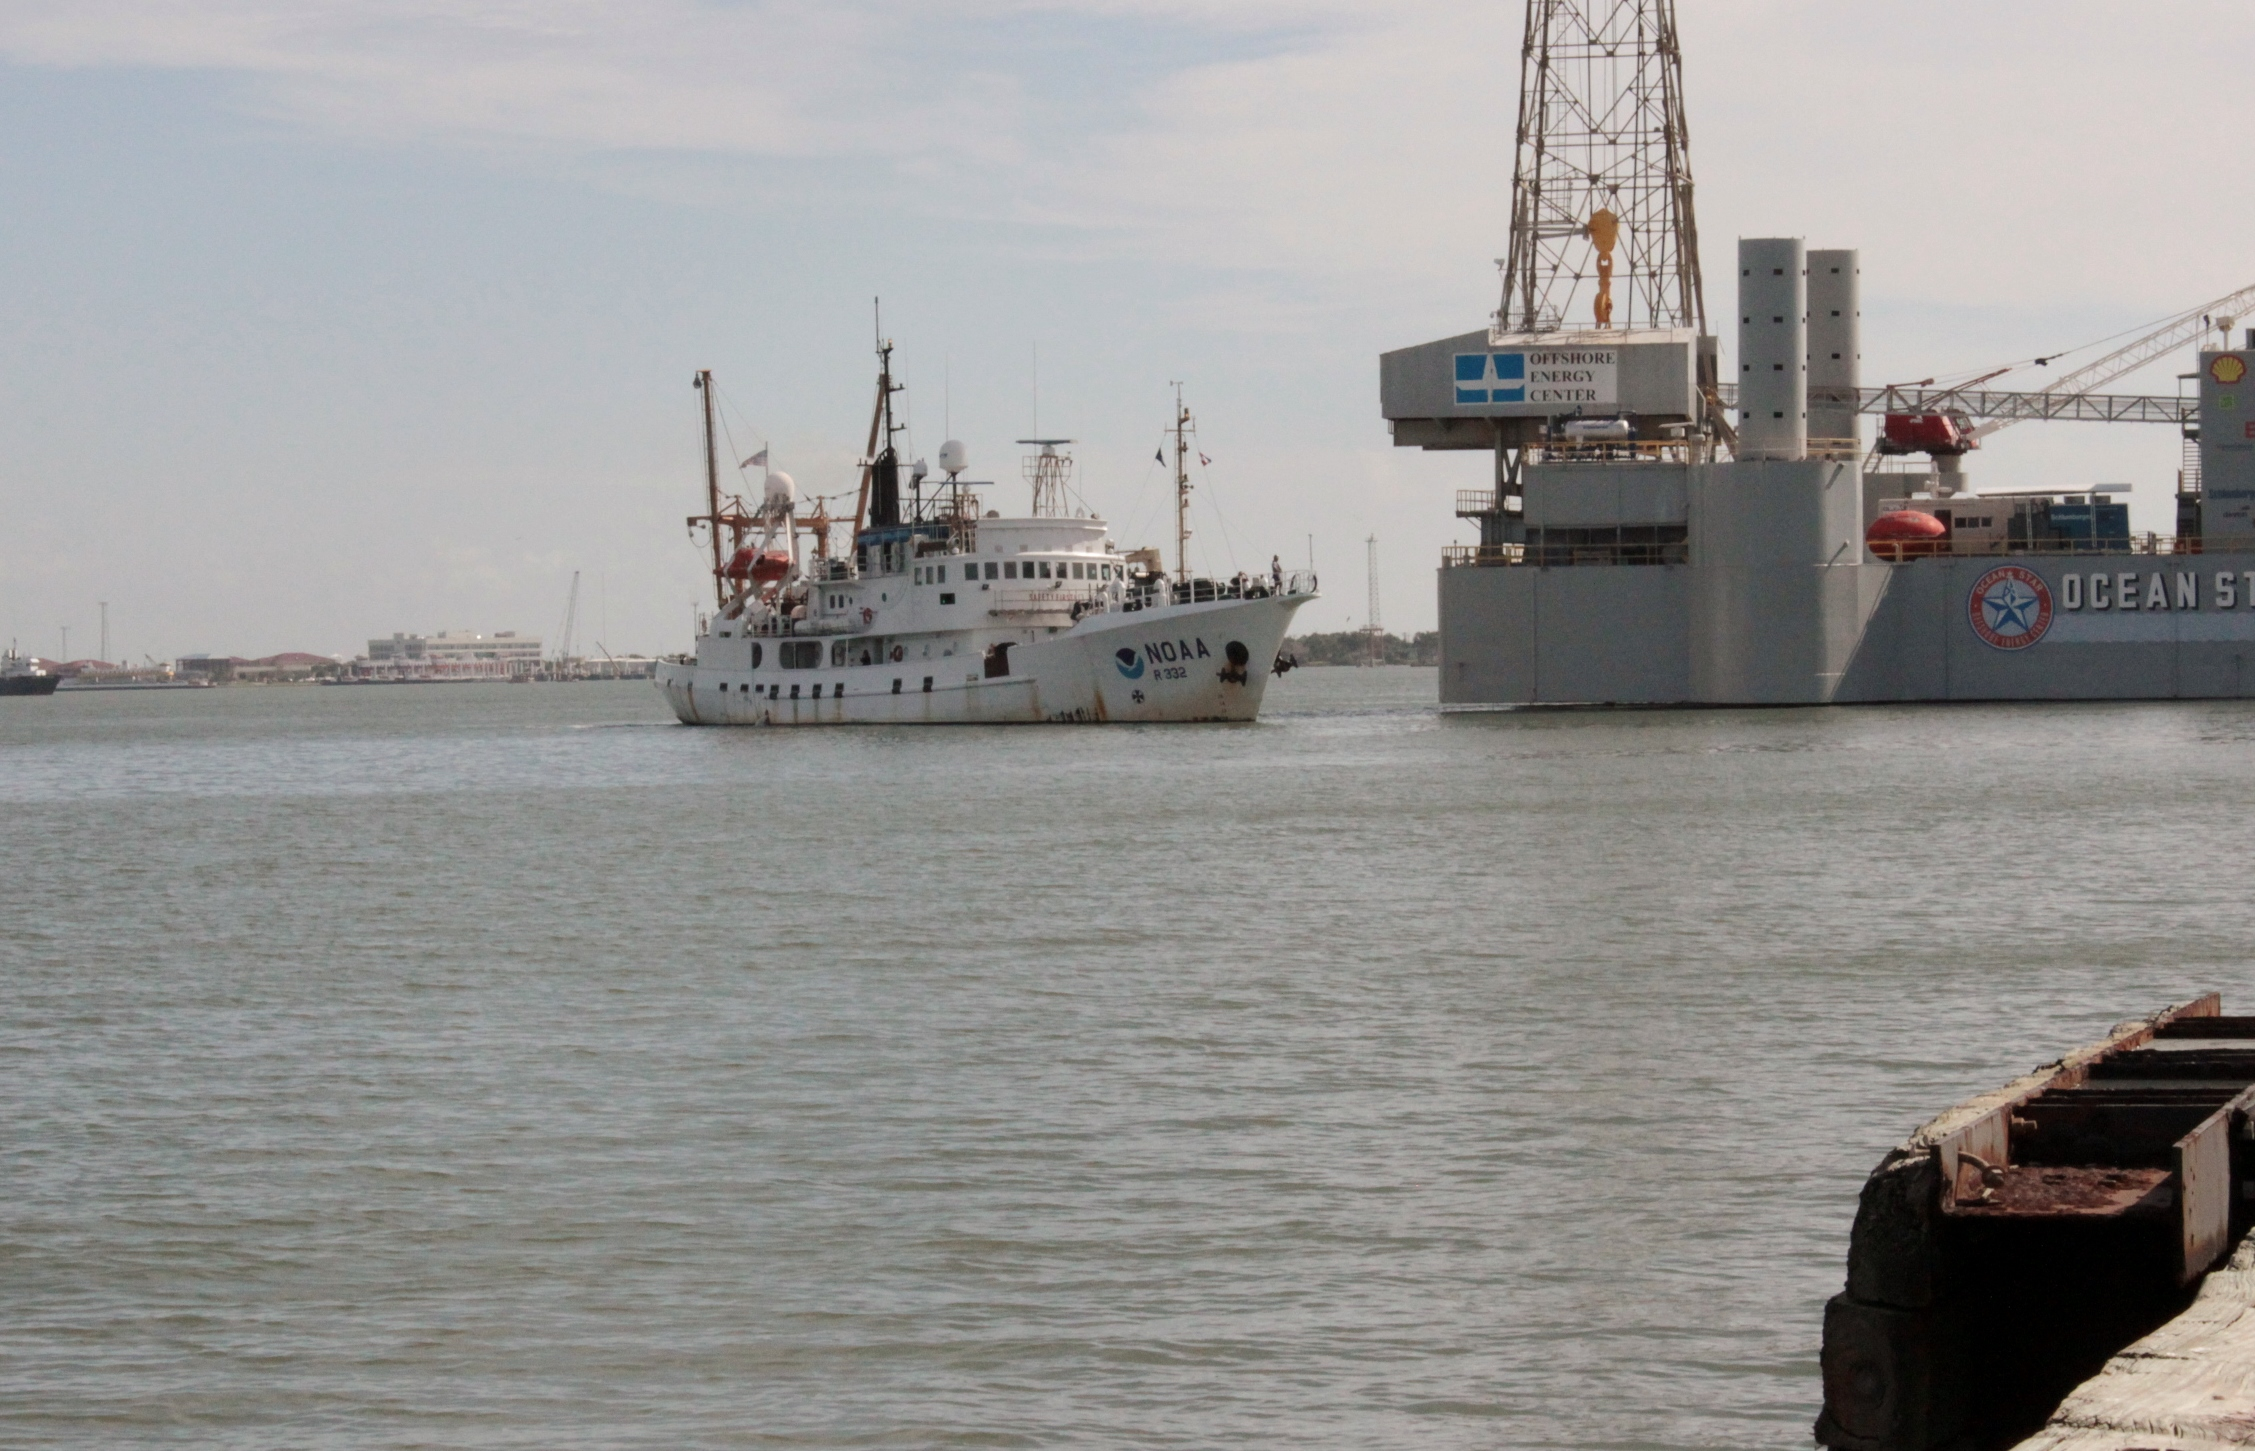 NOAA research ship entering Port of Galveston